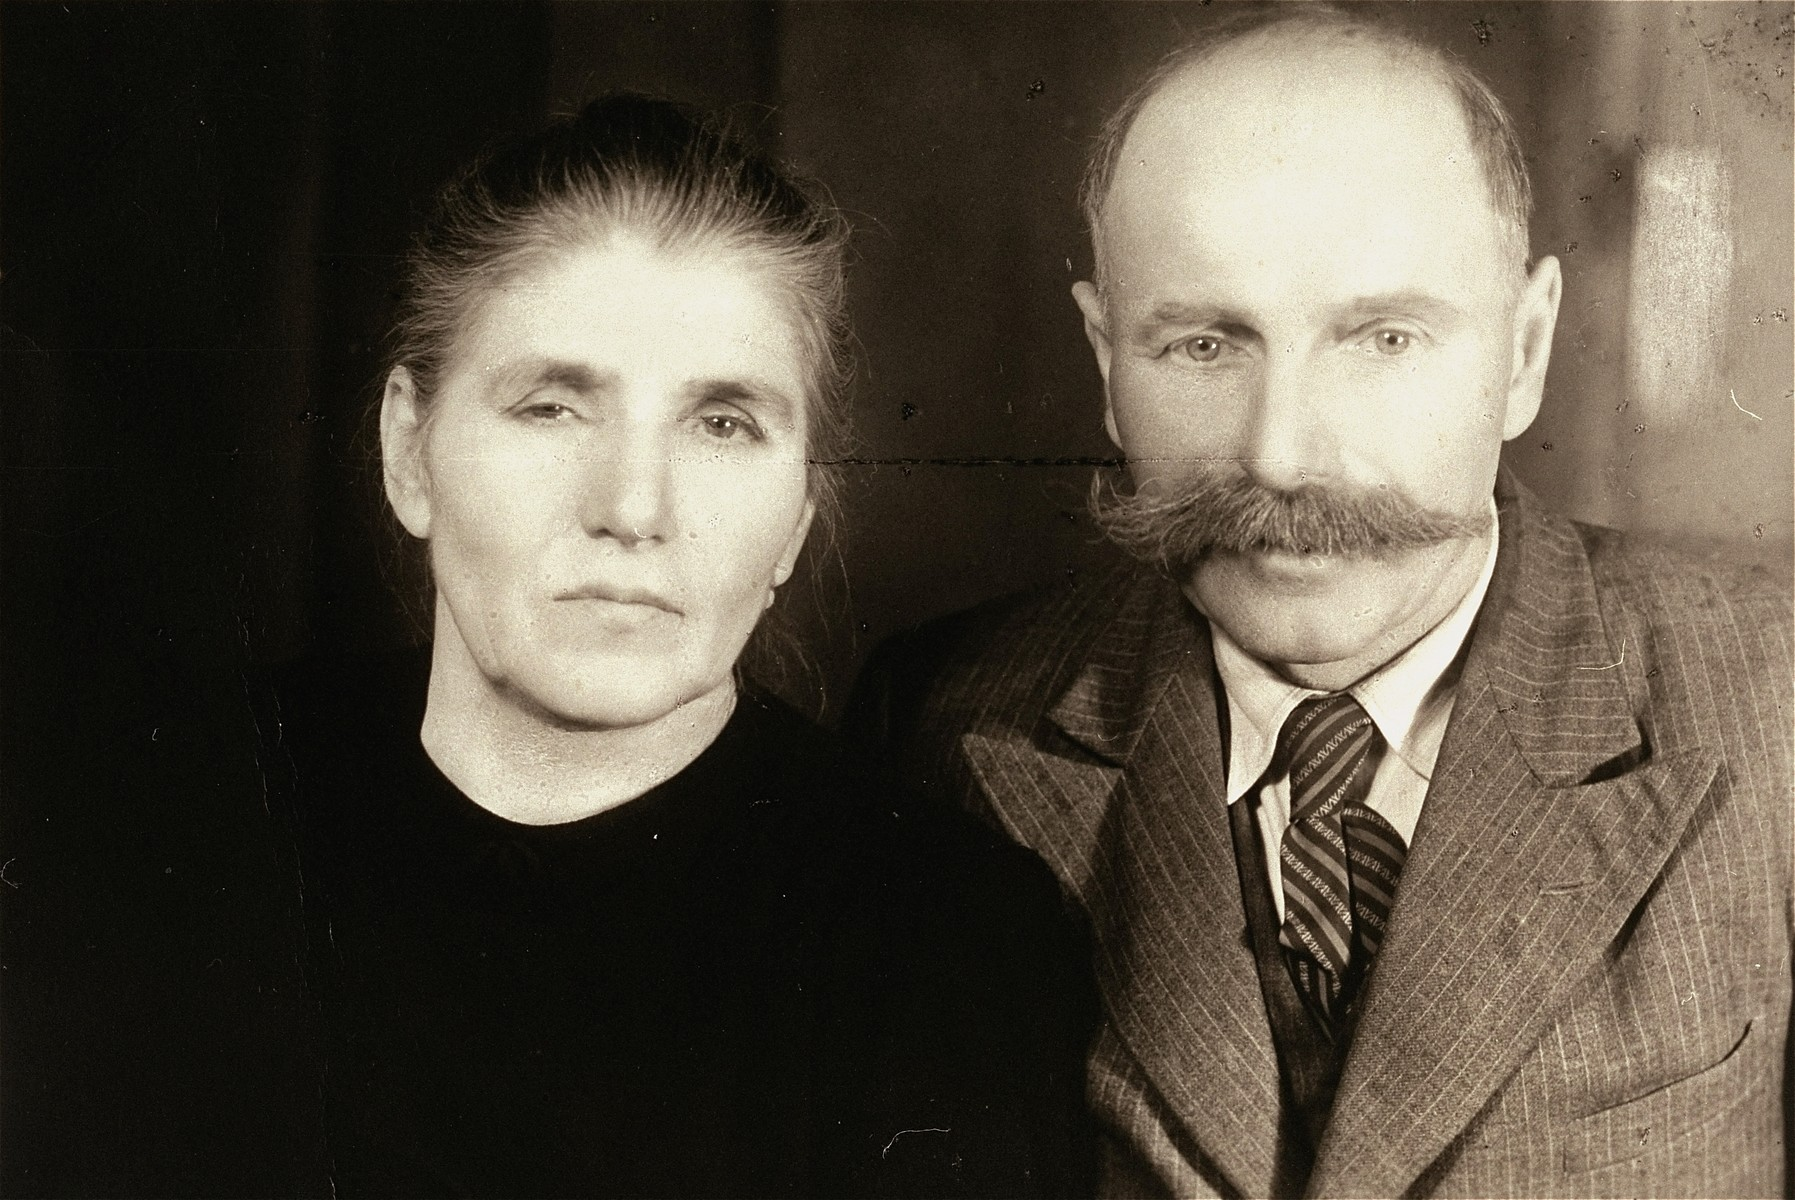 Portrait of Stanislaw and Anna Podsiadly, rescuers of the donor, Kurt Thomas [Ticho].    After escaping on foot from Sobibor, Thomas hid in the farmers' pigsty in a space above the ceiling, below the roof of the shack.  He stayed there from October 21, 1943, until July of 1944.  Stanislaw and Anna Podsiadly were honored as righteous gentiles in Warsaw.